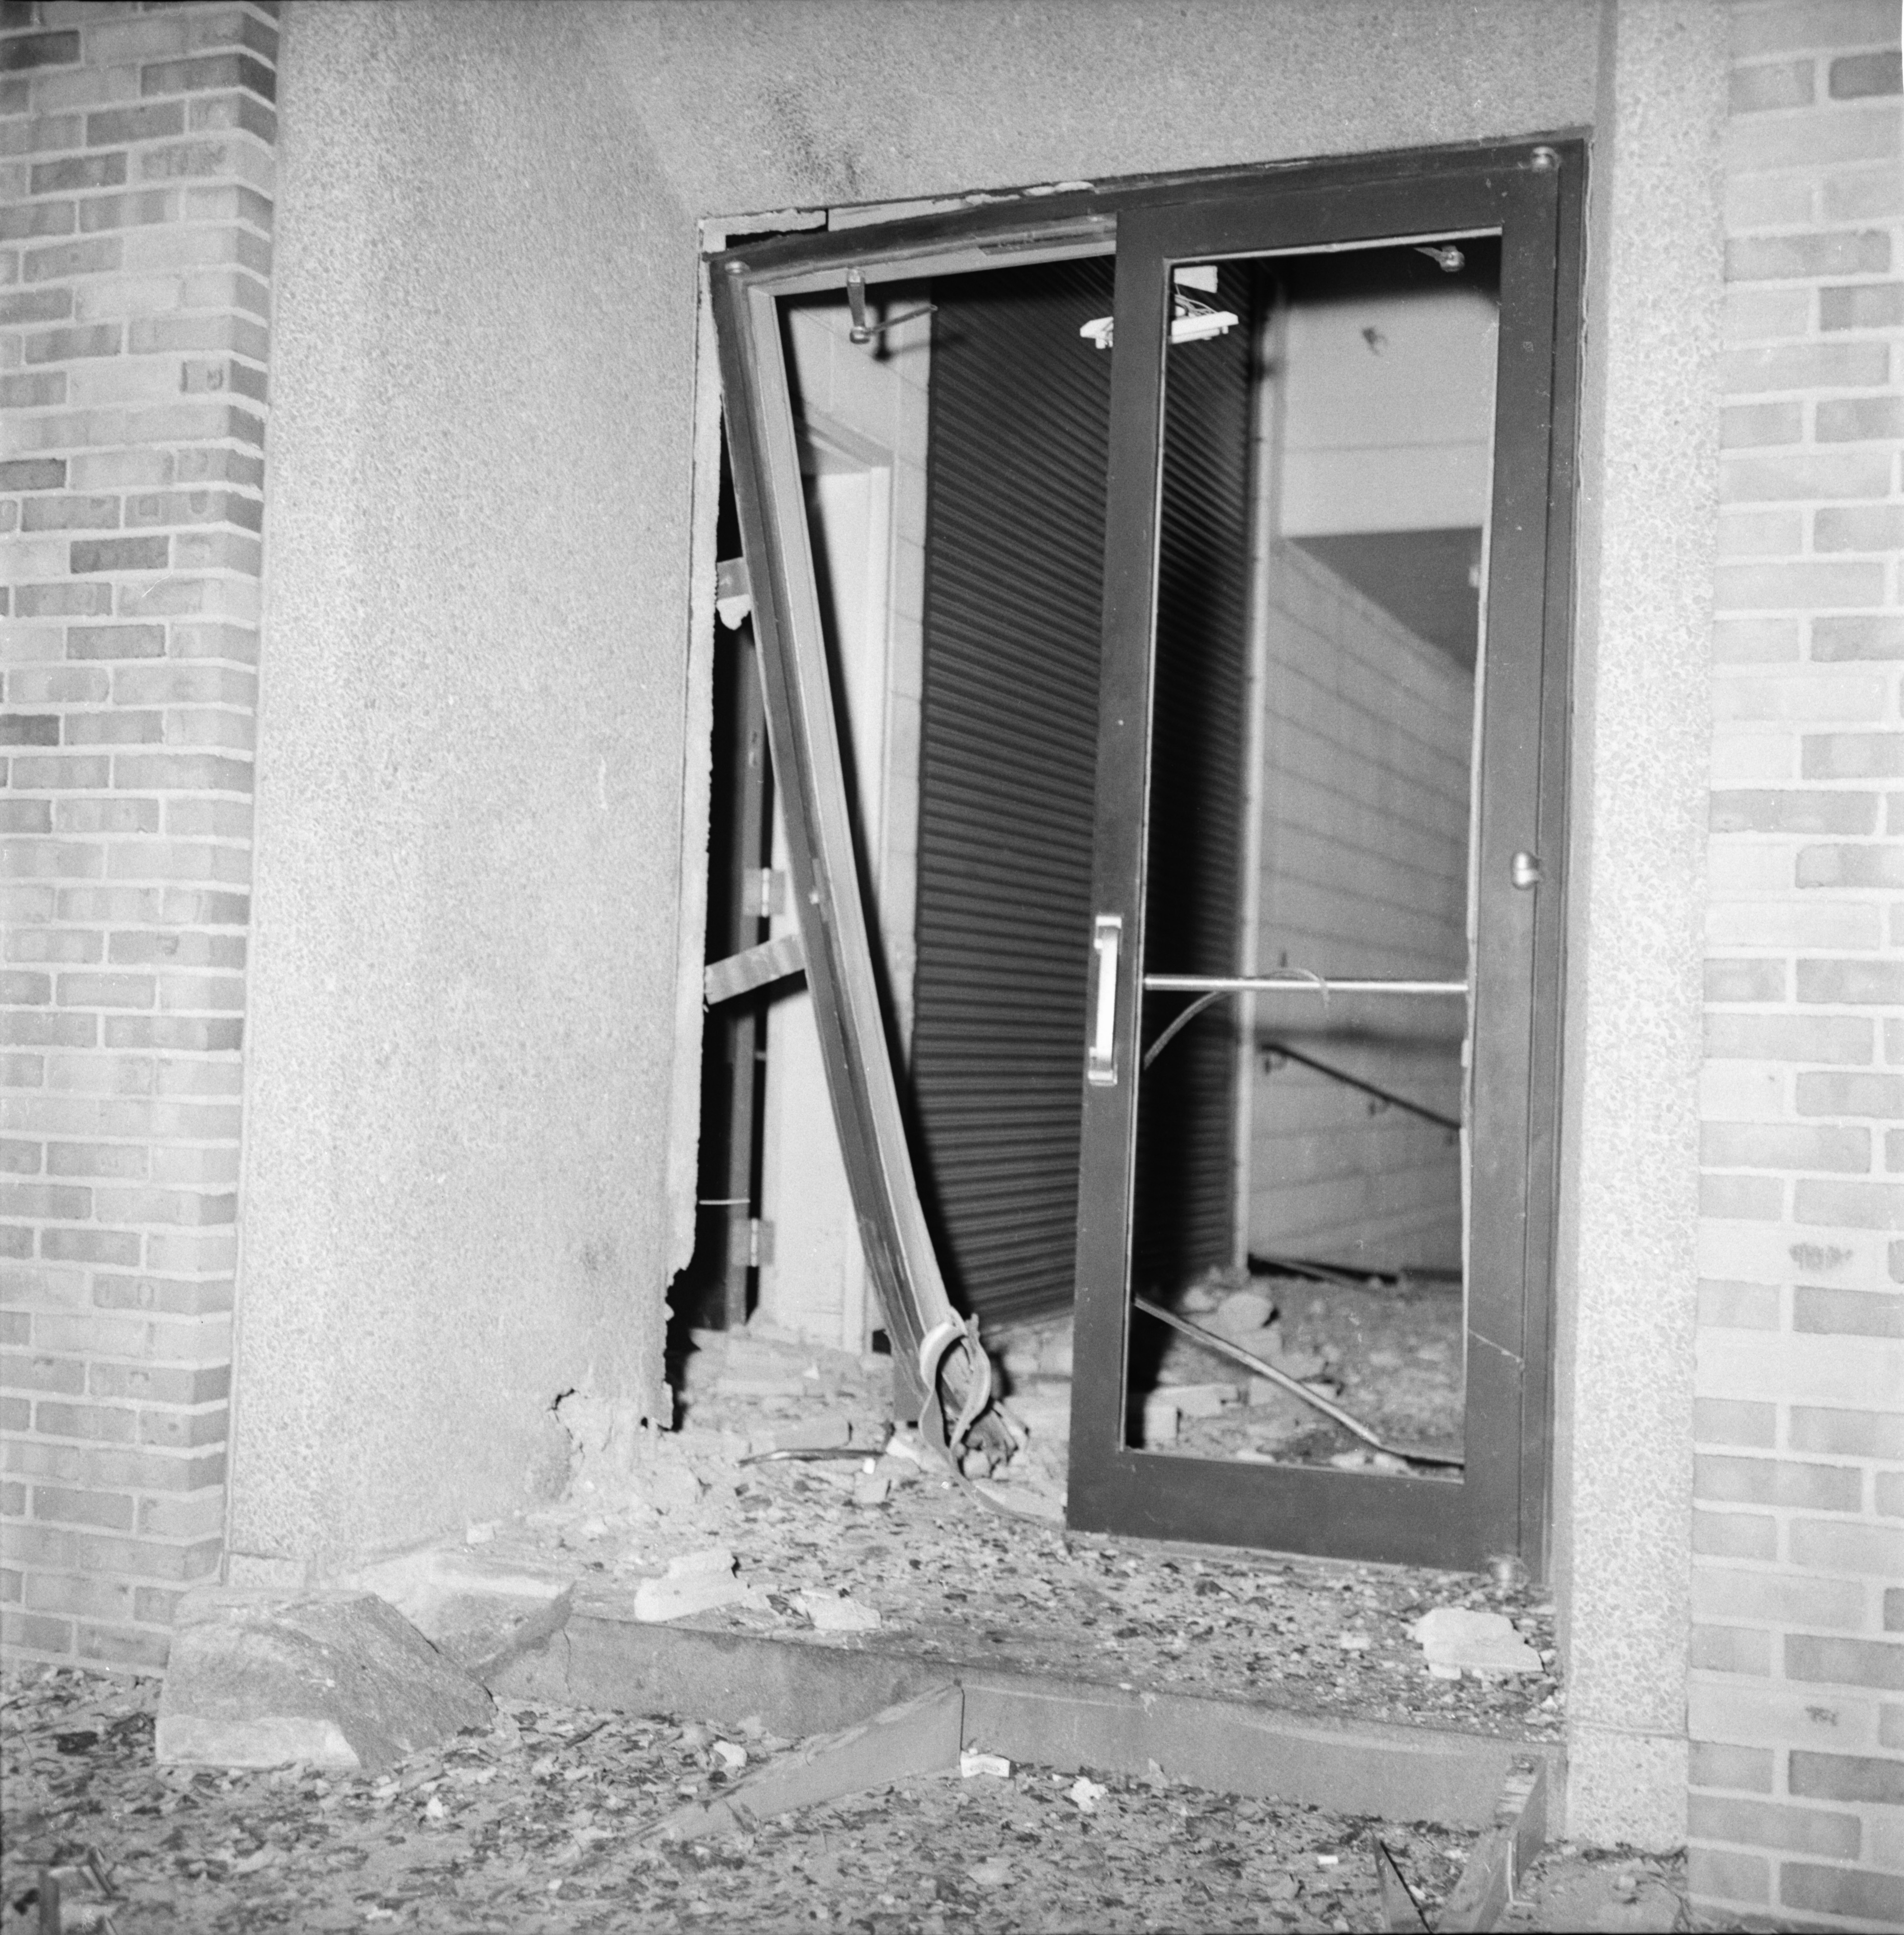 Door Blown Out by Bomb Blast at Institute of Science and Technology, University of Michigan image